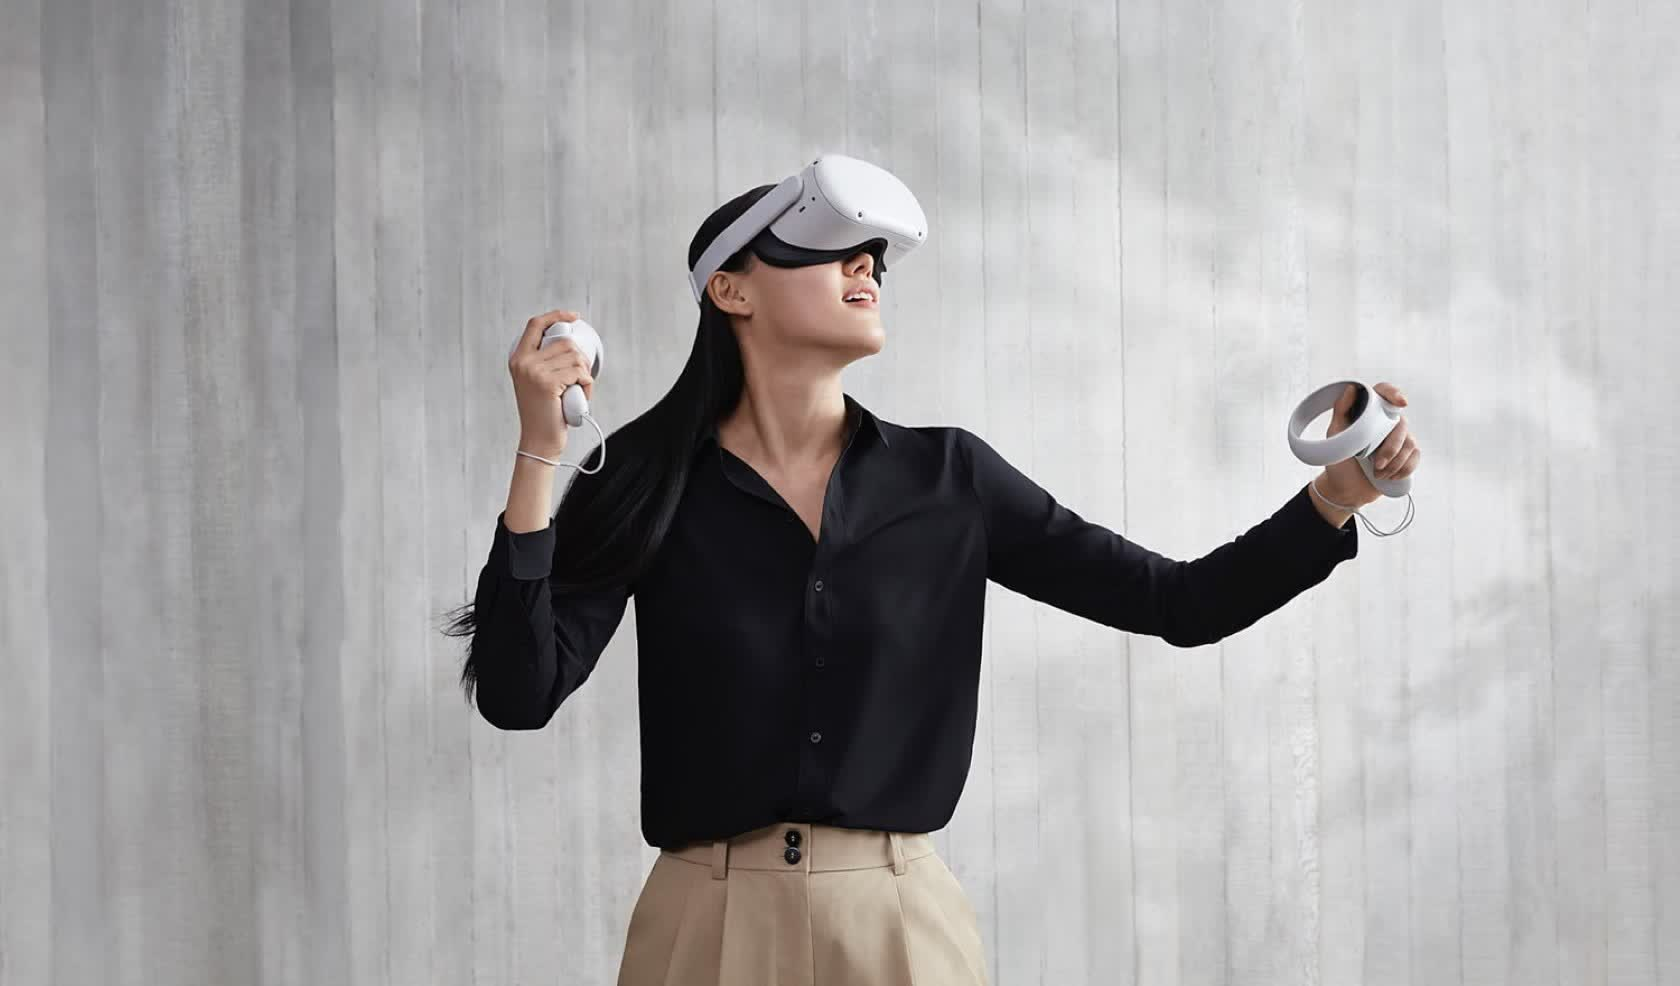 The Oculus Quest 2 raked in five times as many pre-orders as its predecessor